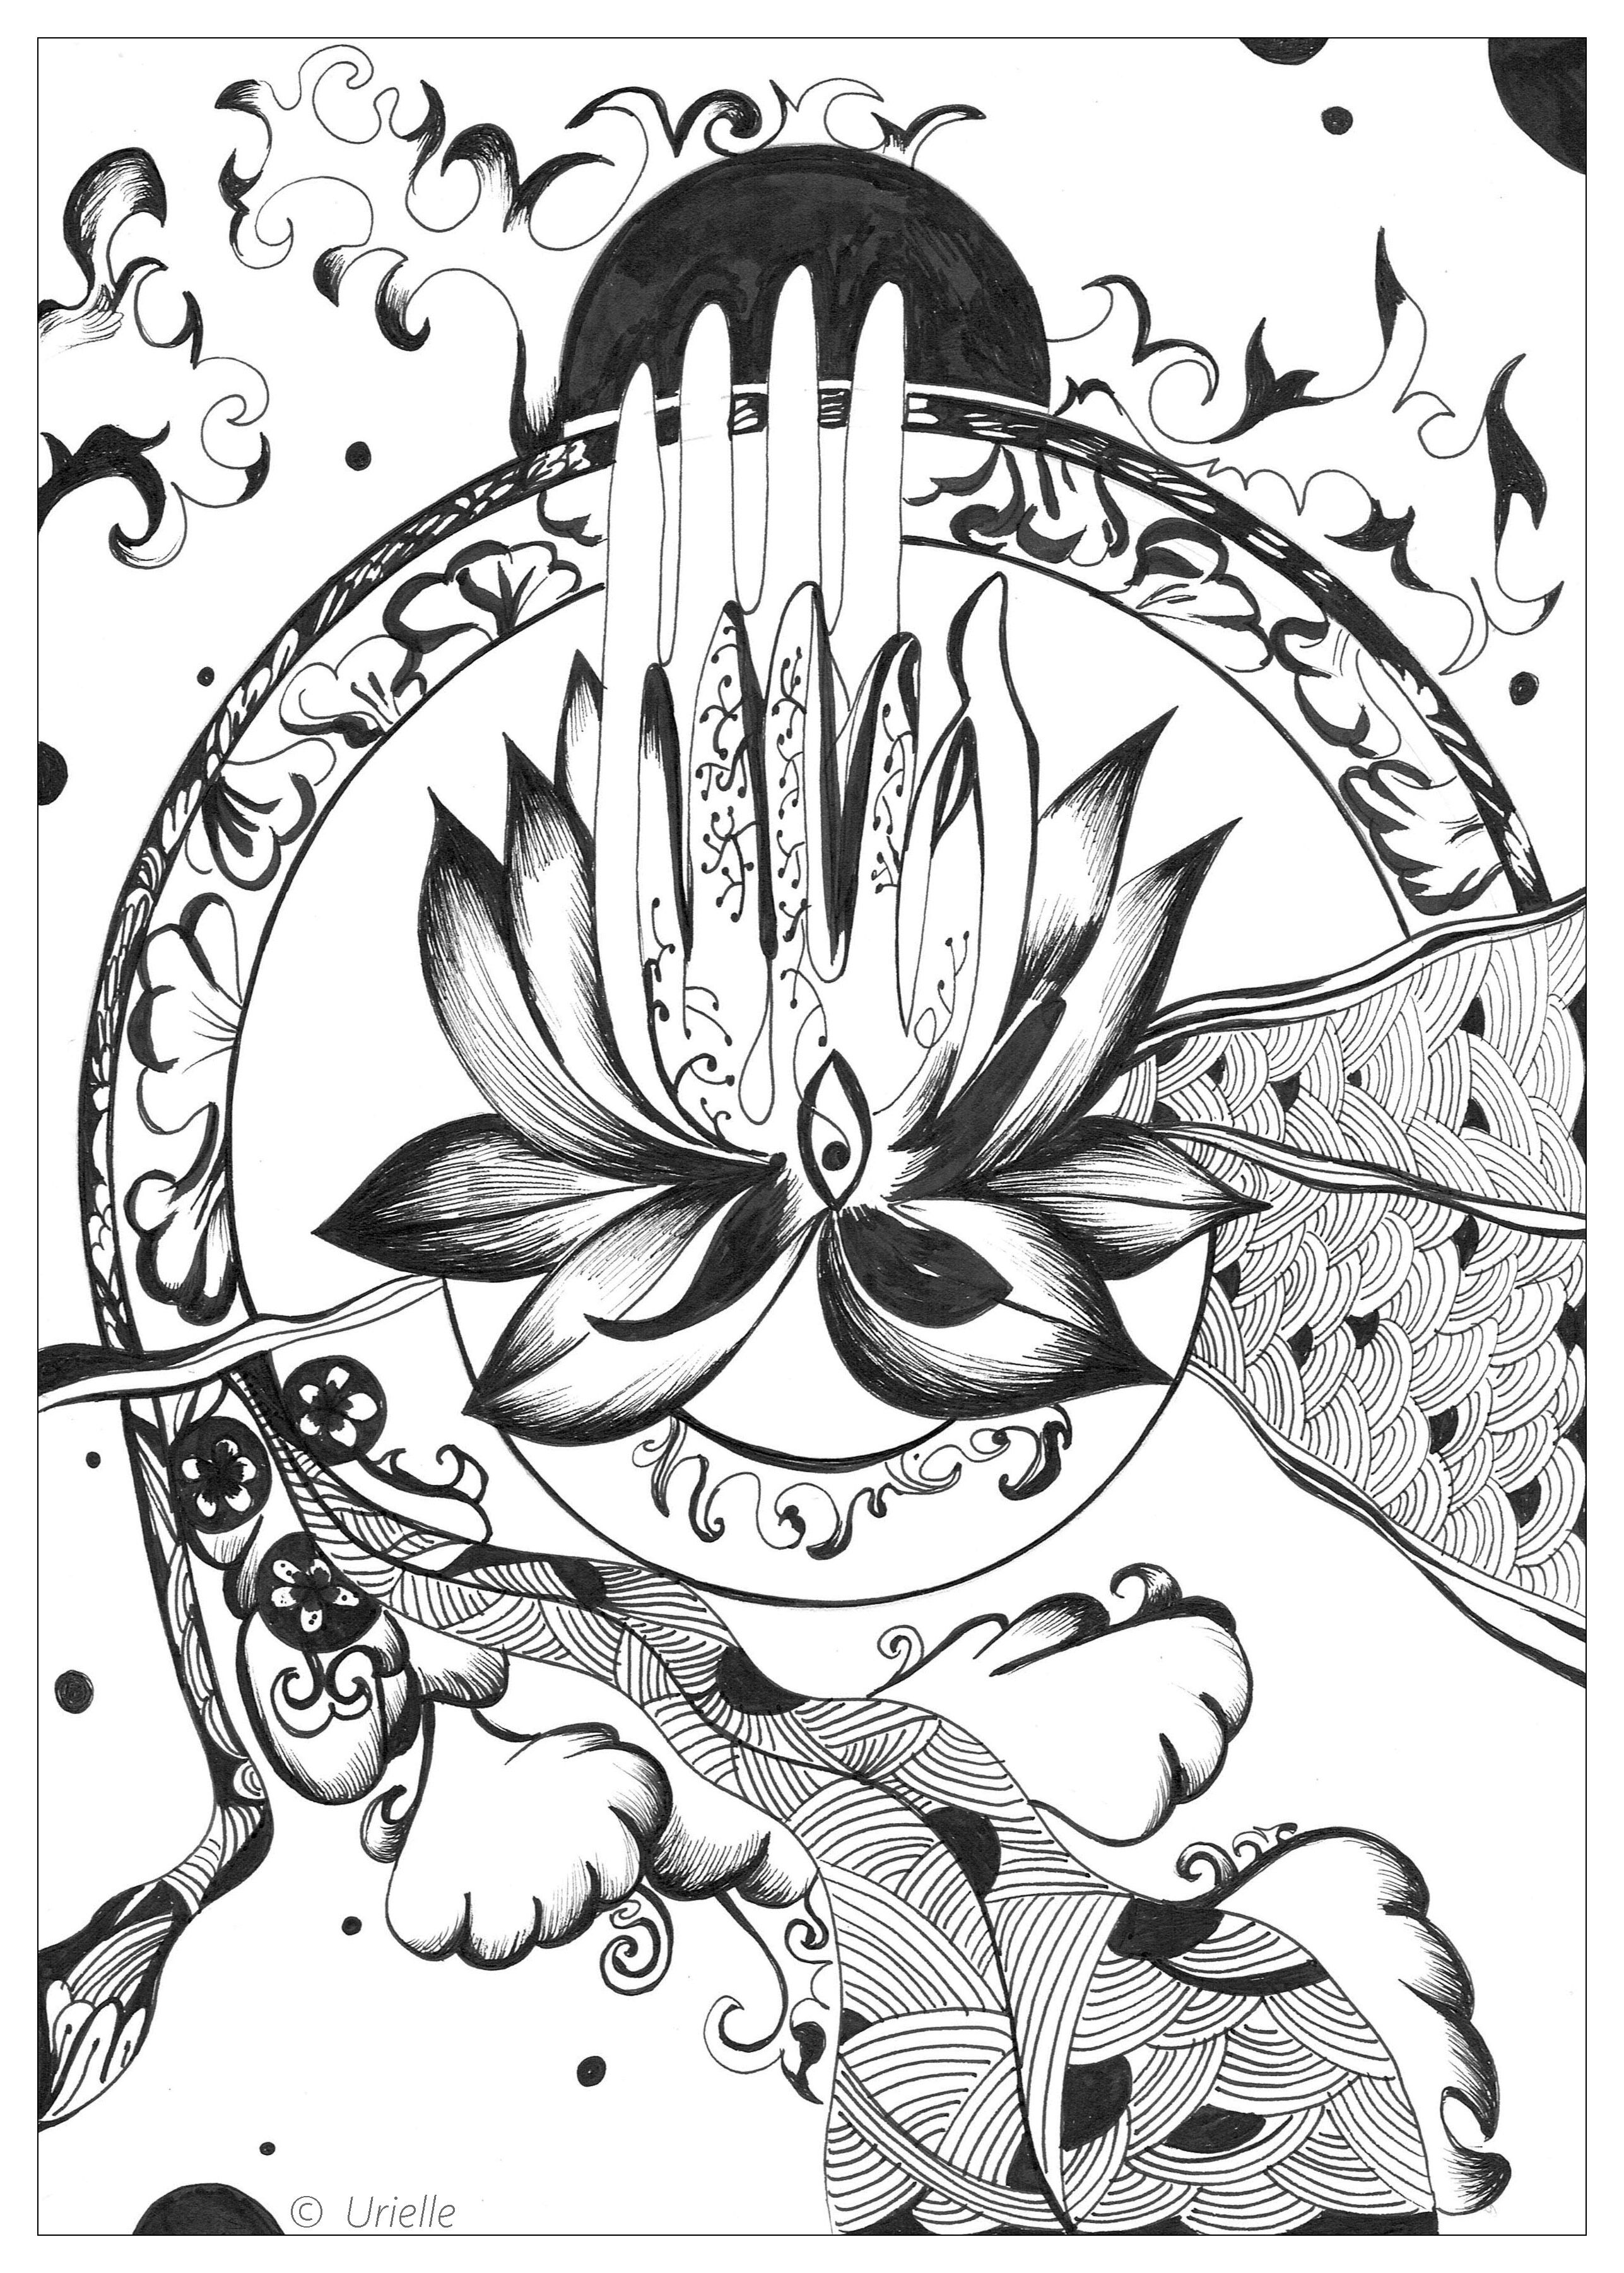 Discover 3 New Incredible Coloring Pages Created By Our Partner Artist Urielle Force Sweet Contemplation Et Peace And Serenity